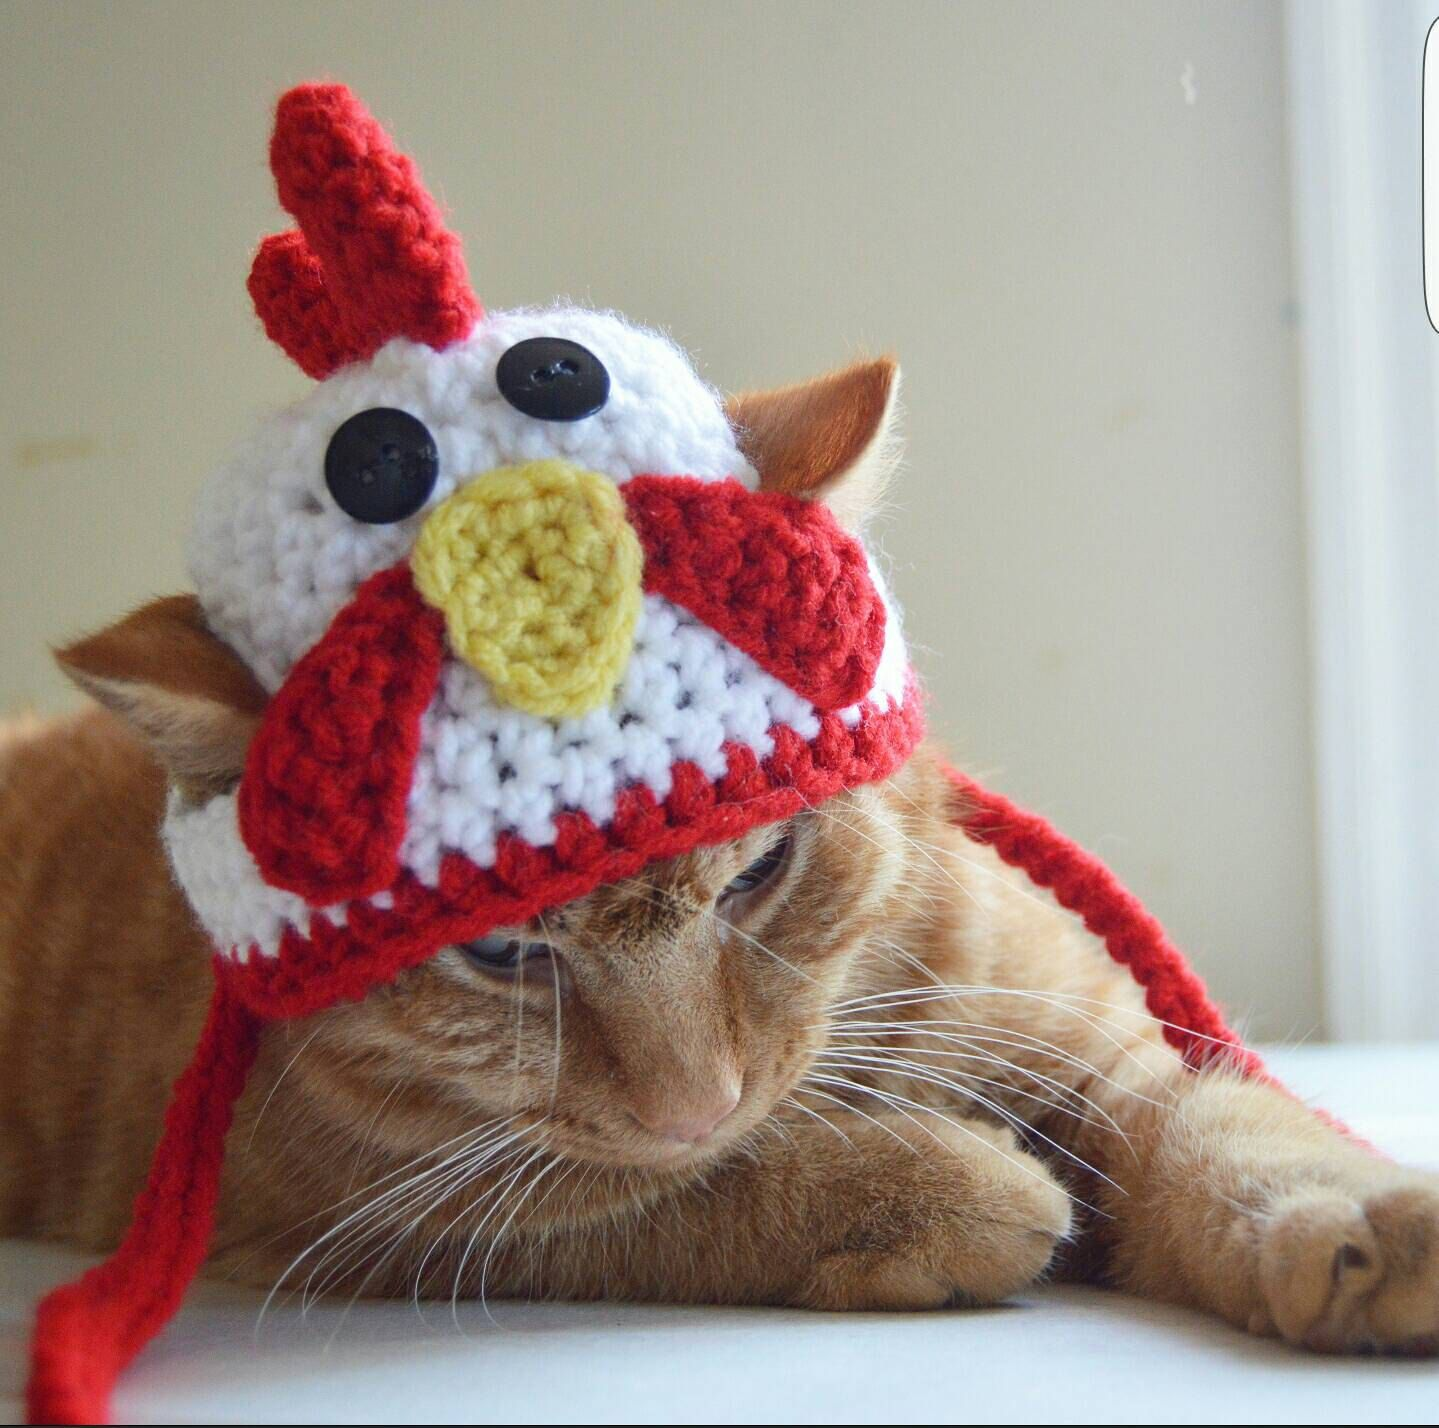 Old Macdonald May Have Had A Farm But I Bet He Never Had A Kitty Wearing A Rooster Cat Hat This Fun Rooster Hat For C Crochet Cat Pattern Crochet Cat